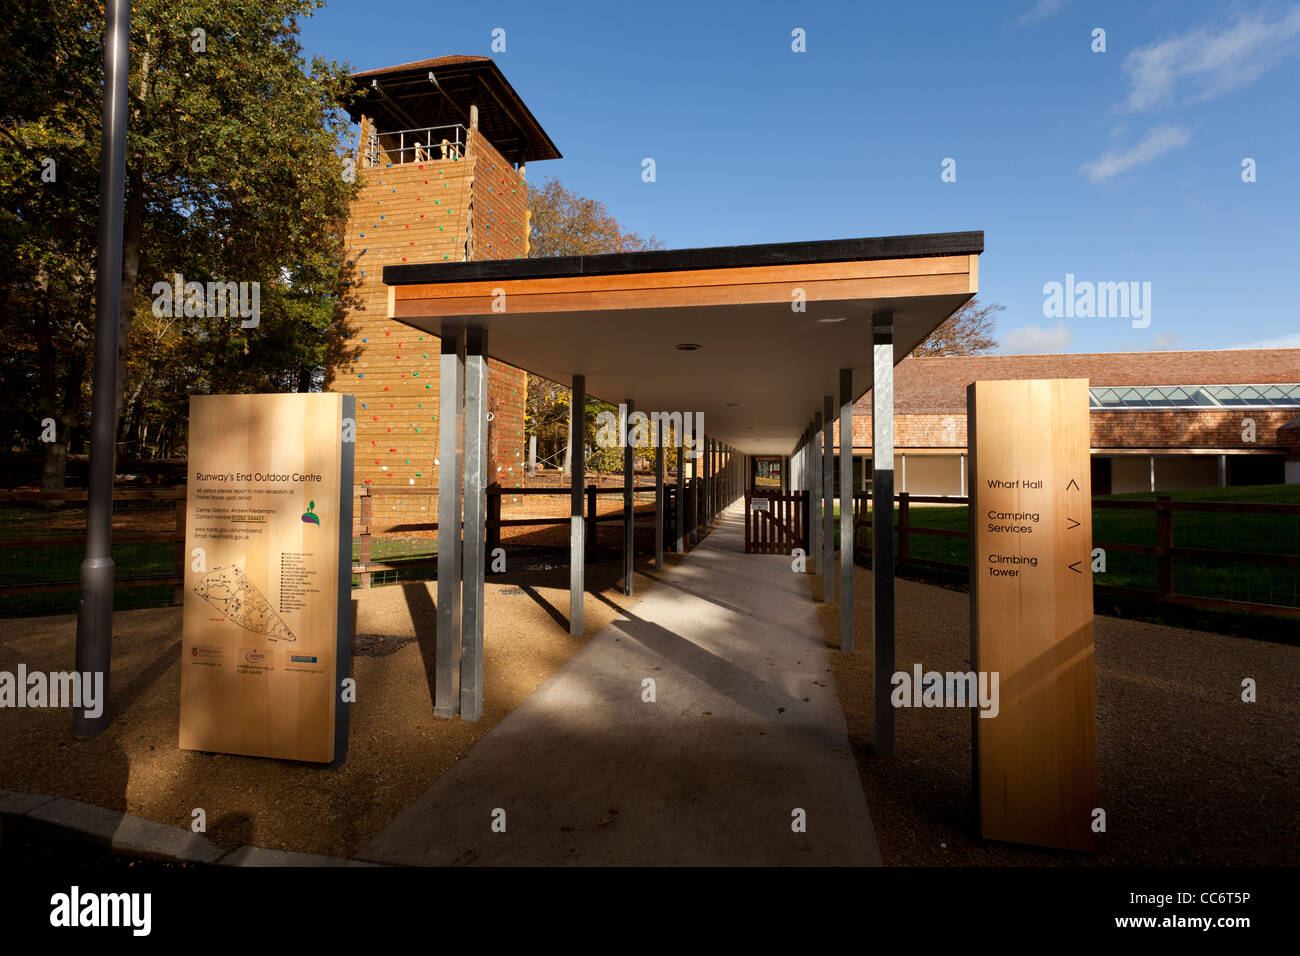 Entrance to  Runways End Outdoor Activity Centre, Farnborough - Stock Image